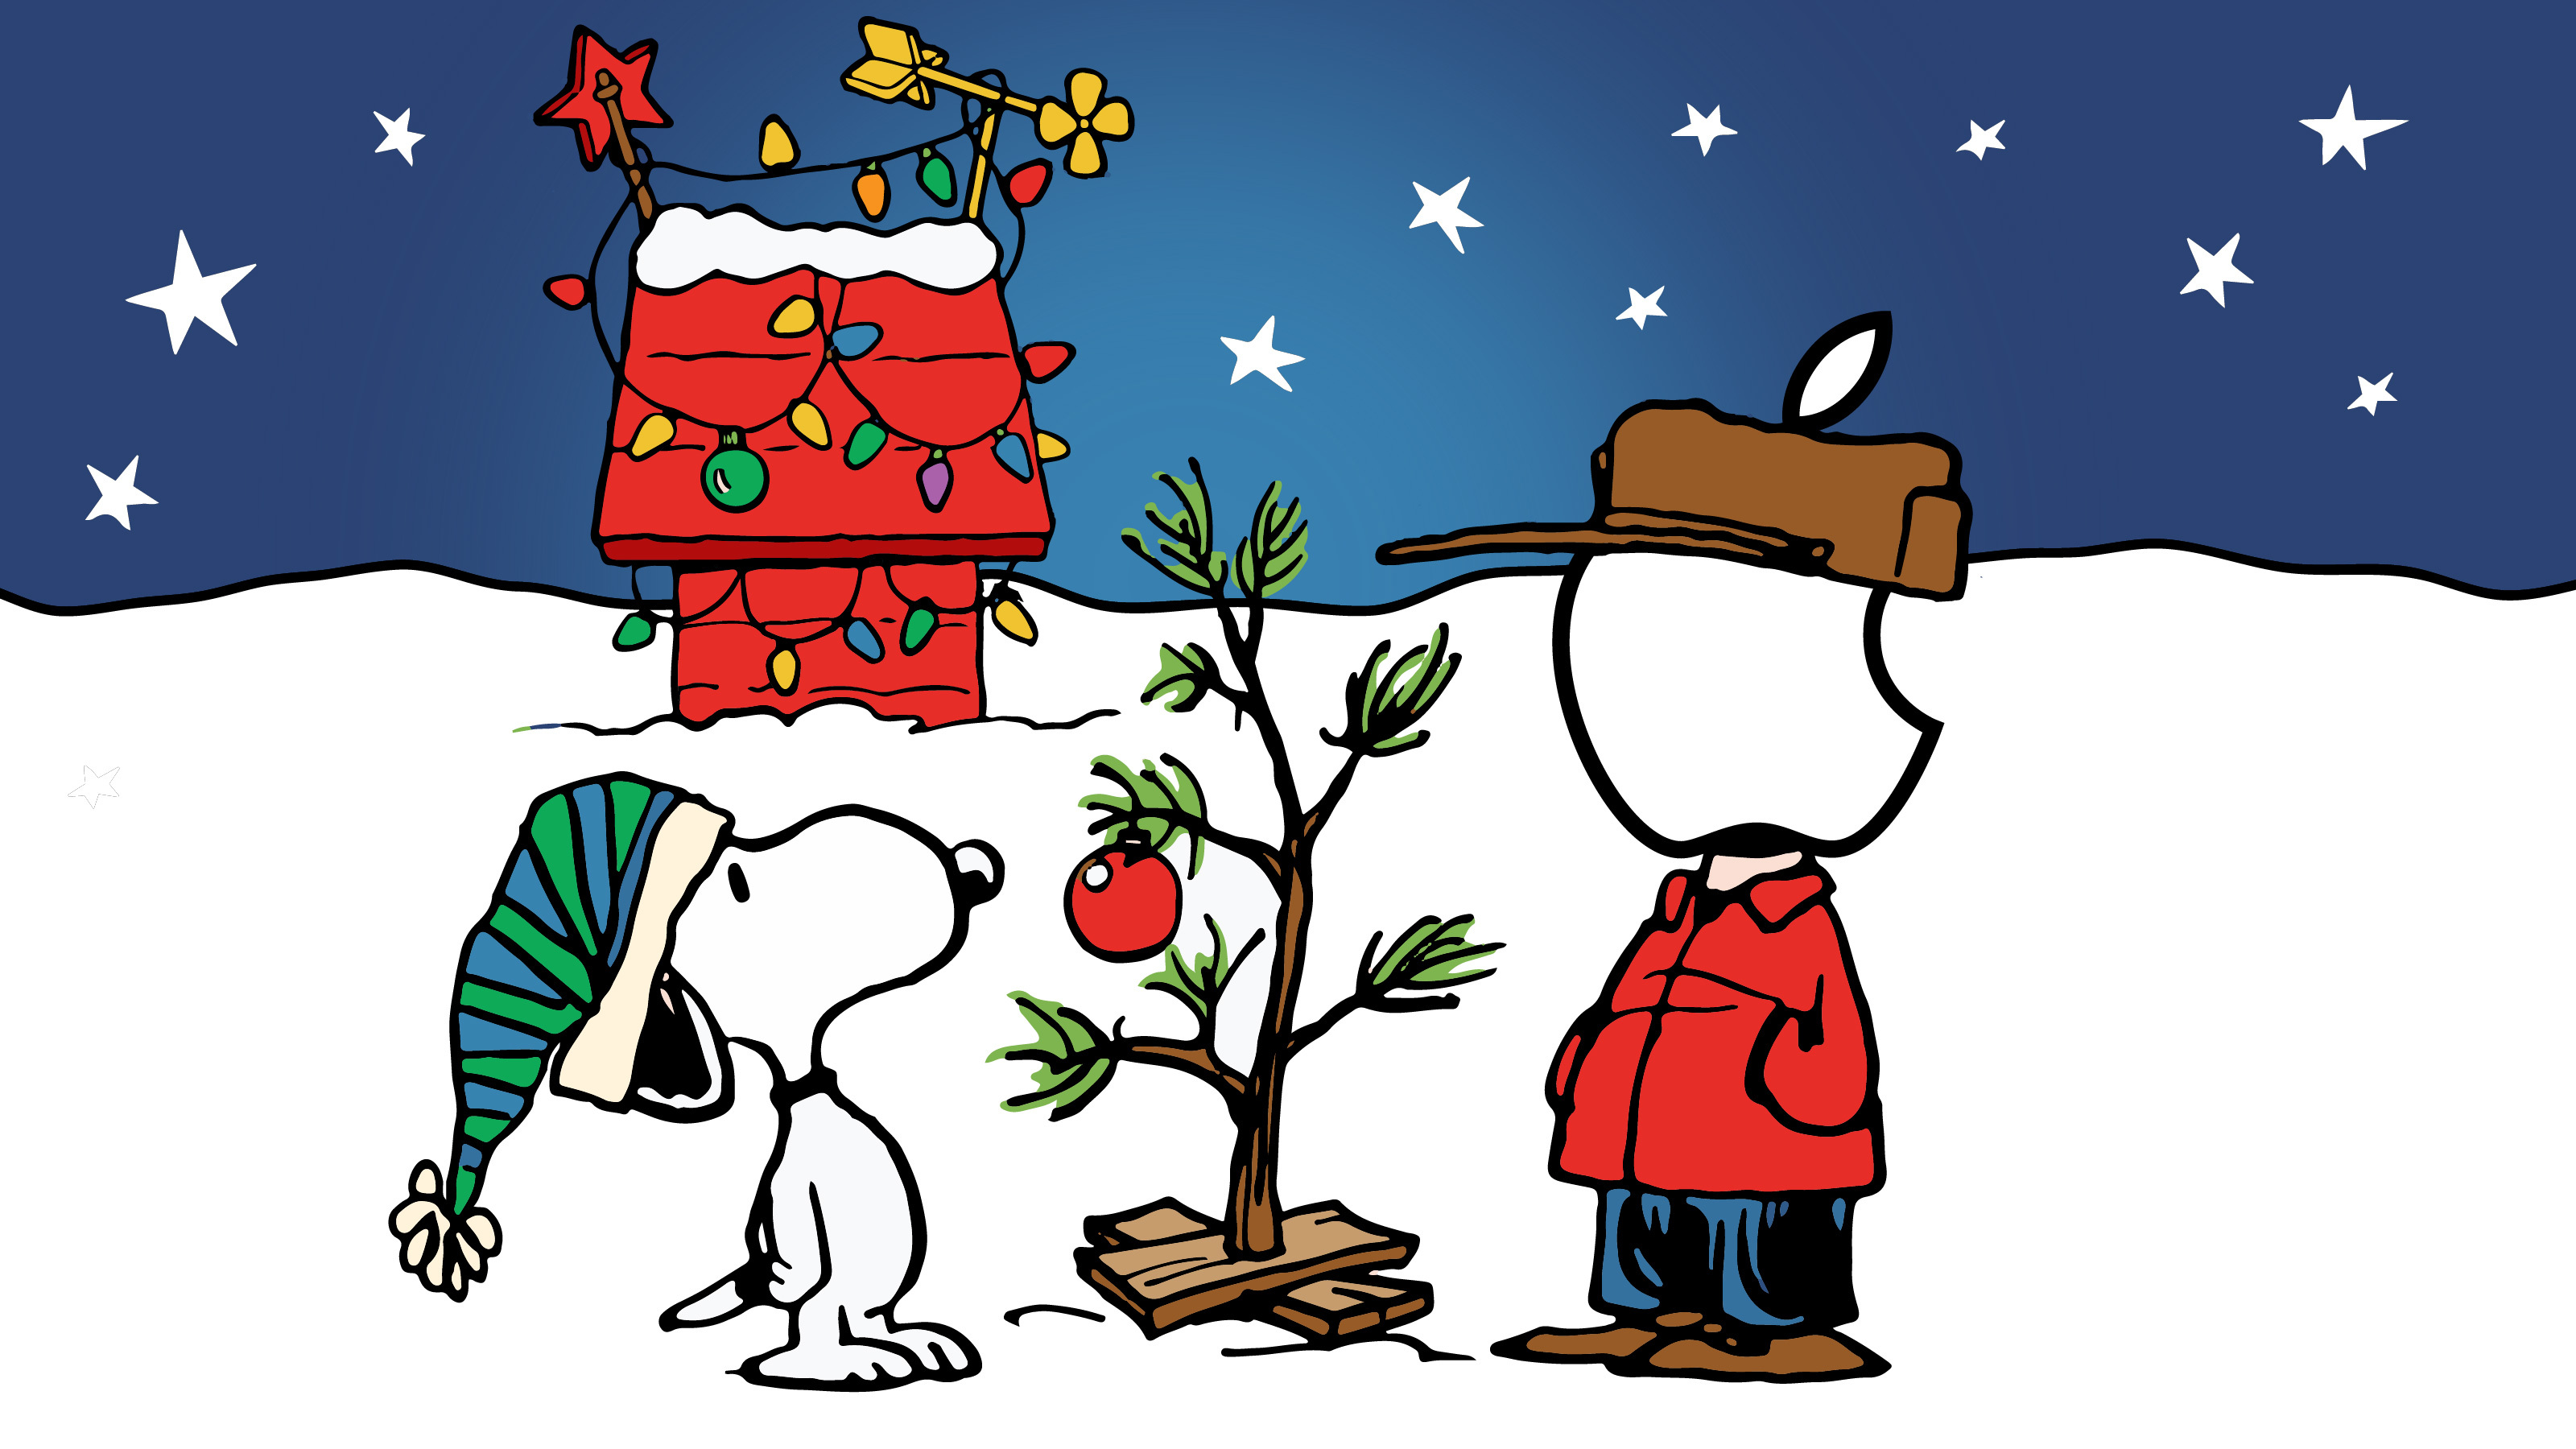 2021 Charlie Brown Christmas Airs When A Charlie Brown Christmas Will Air On Pbs In Spite Of Apple Tv Rights Exclusive Techcrunch